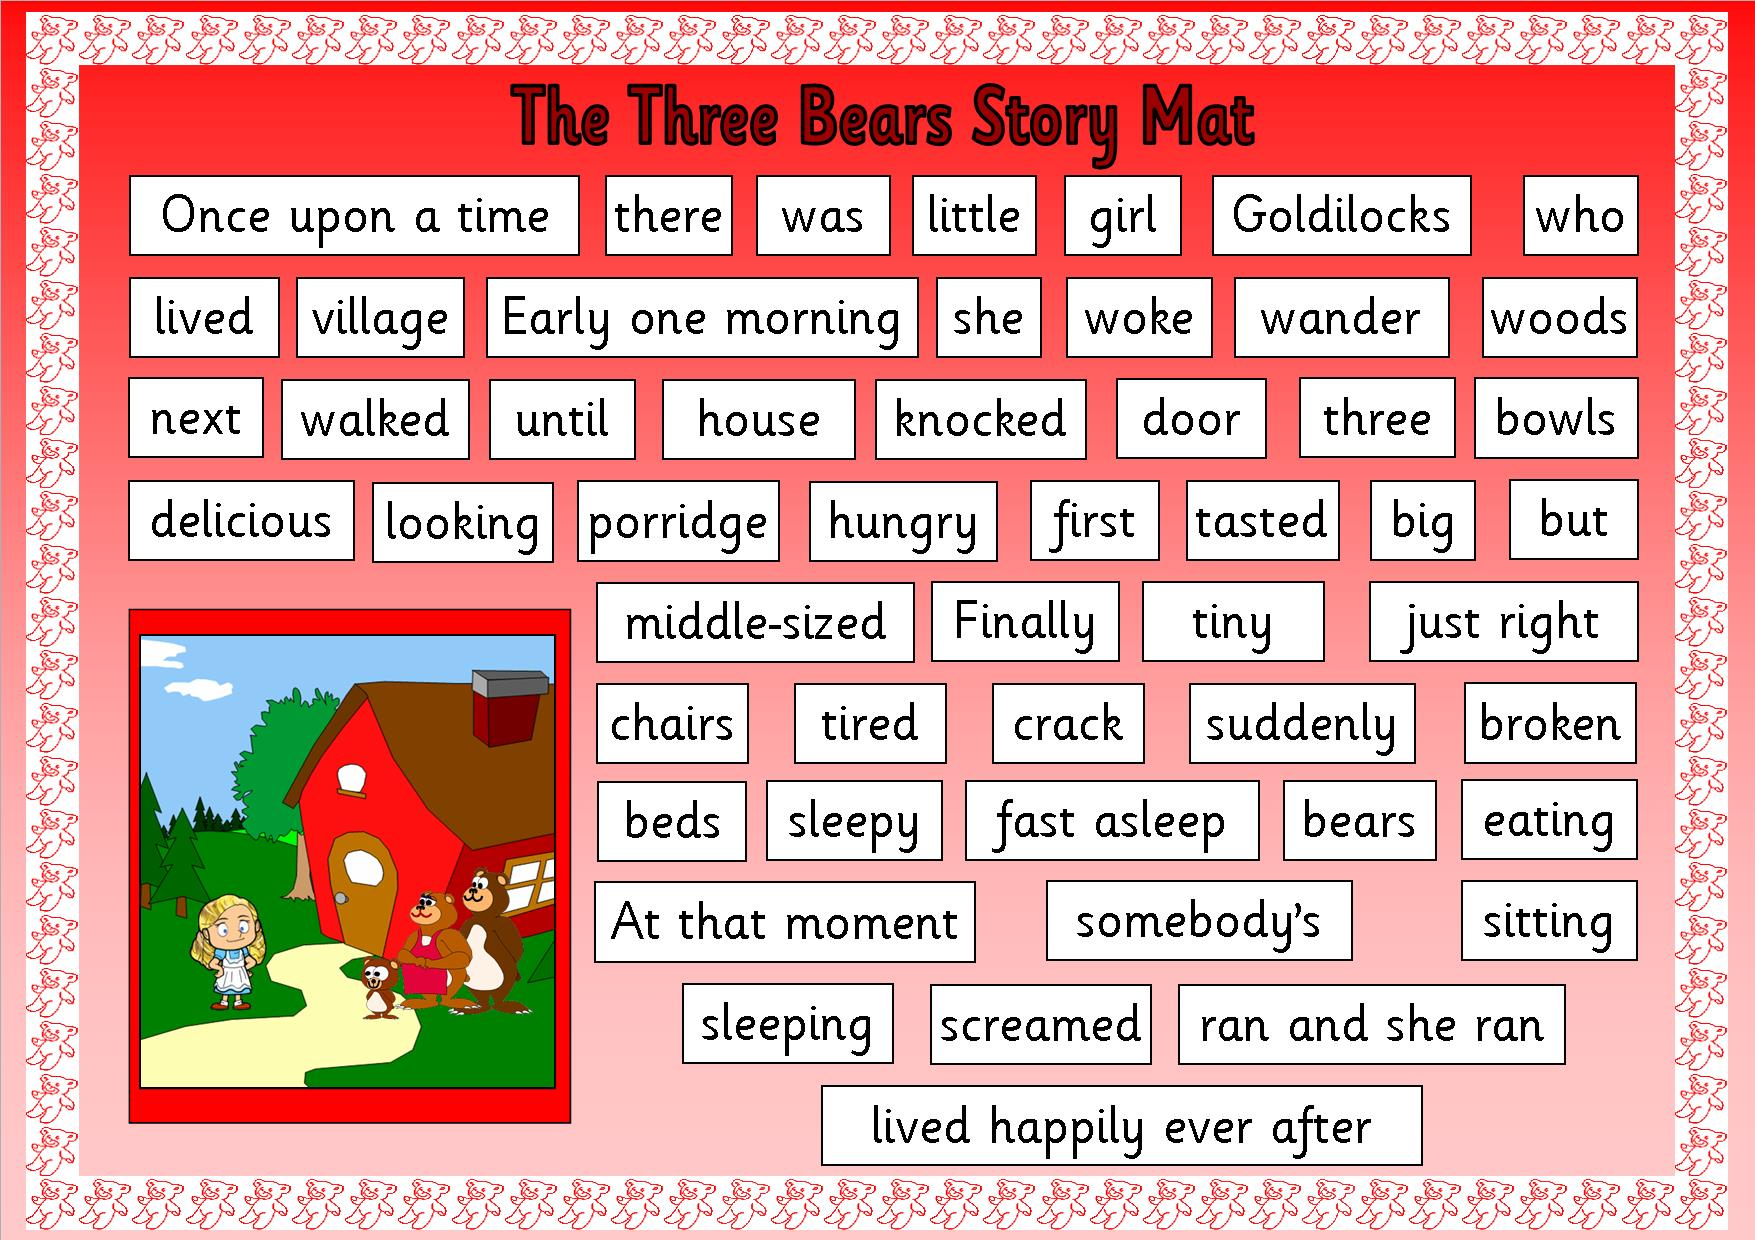 Uncategorized Goldilock And The Three Bears Story eyfs ks1 sen storytelling goldilocks and the three bears story mat2